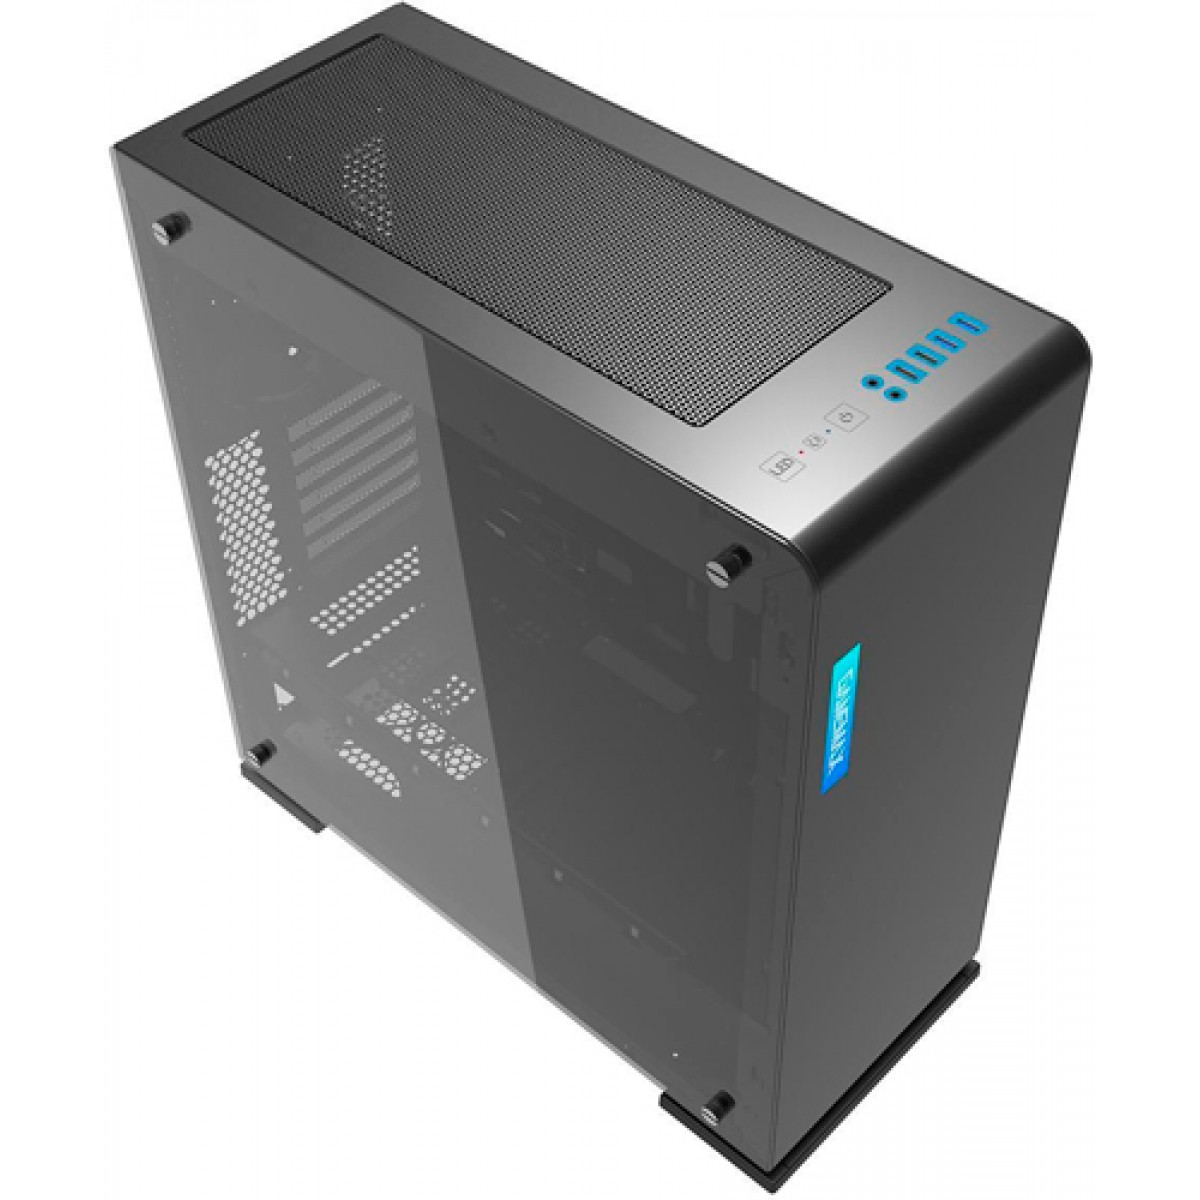 Gabinete Gamer Gamemax Vega M909 RGB,​​​​​​​ Lateral em Acrilico, Full Tower, Com 1 Fan, Black, S-Fonte, GMX-VEGA-B